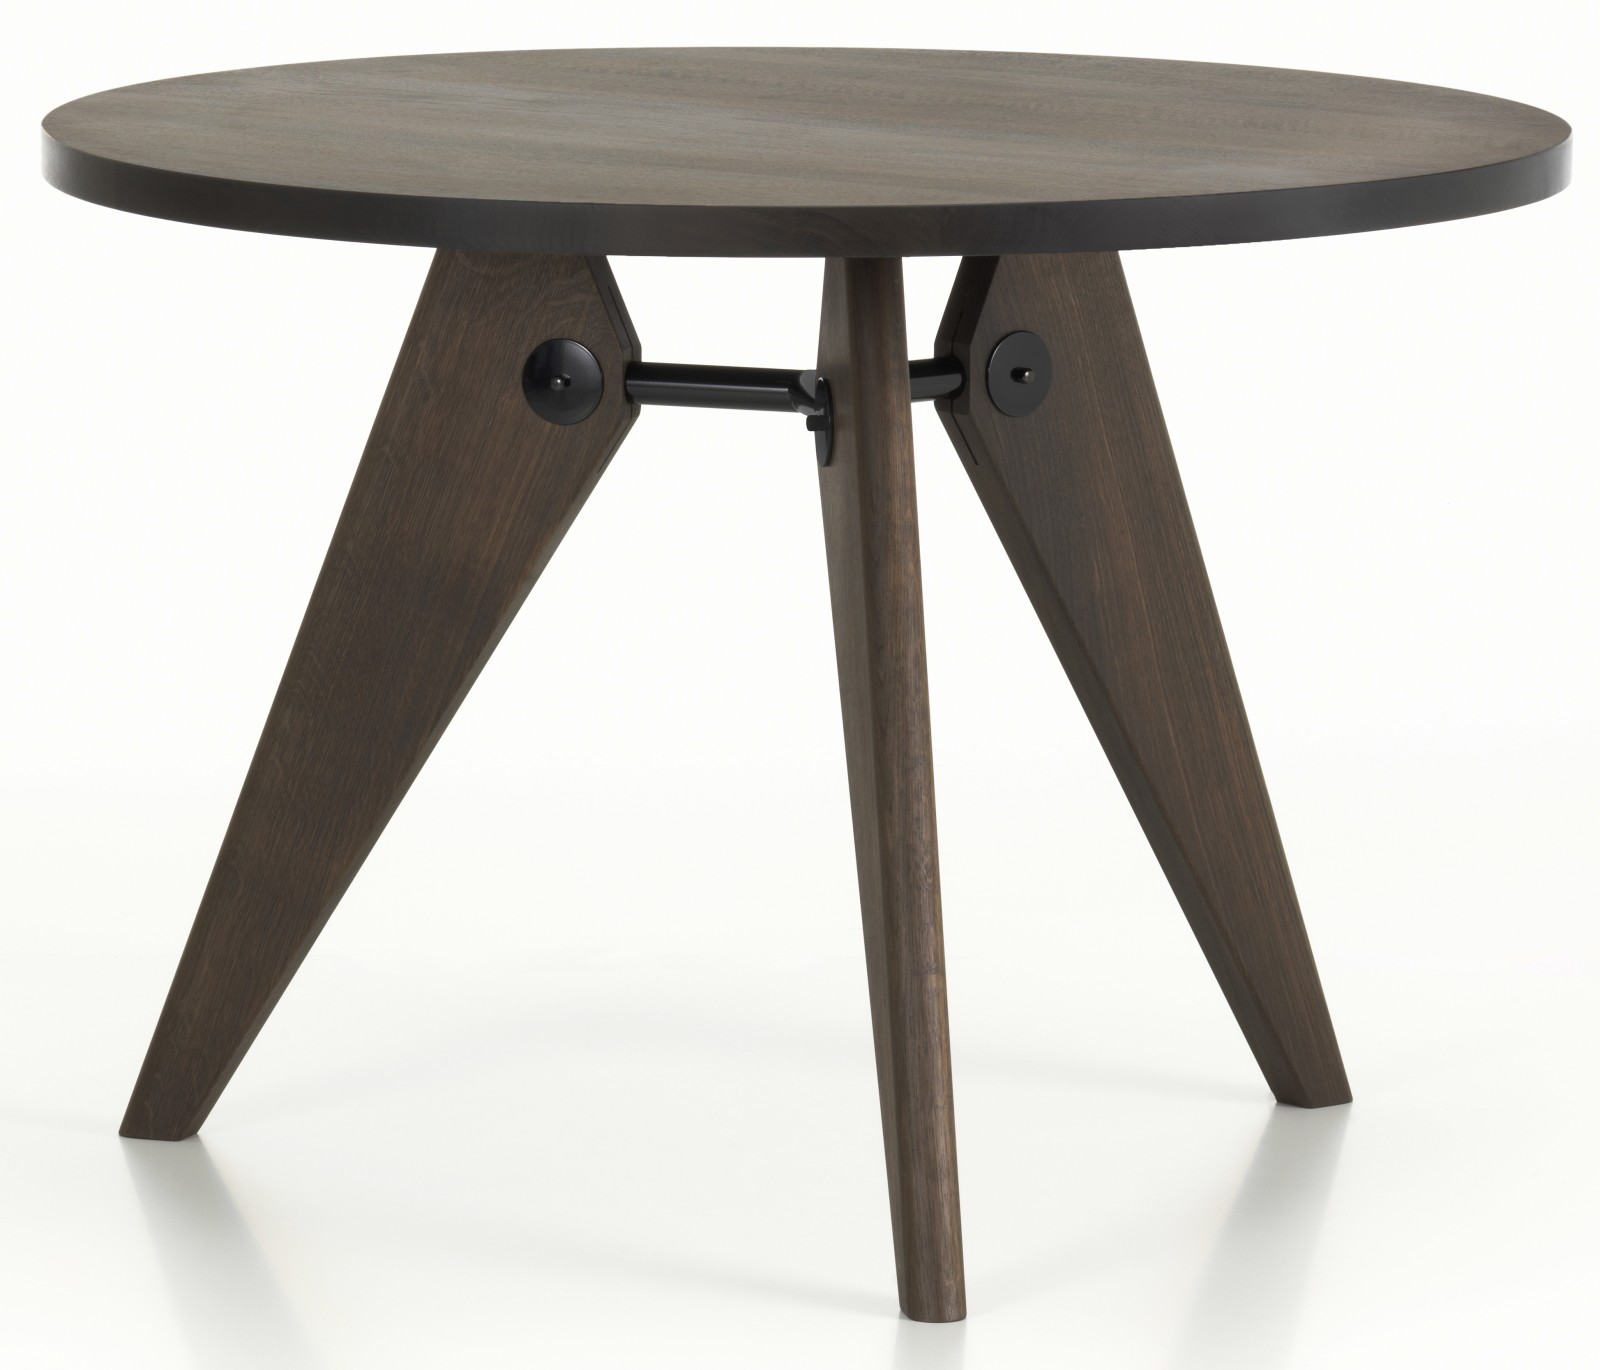 Gueridon Dining Table 90 smoked oiled solid oak, 1050